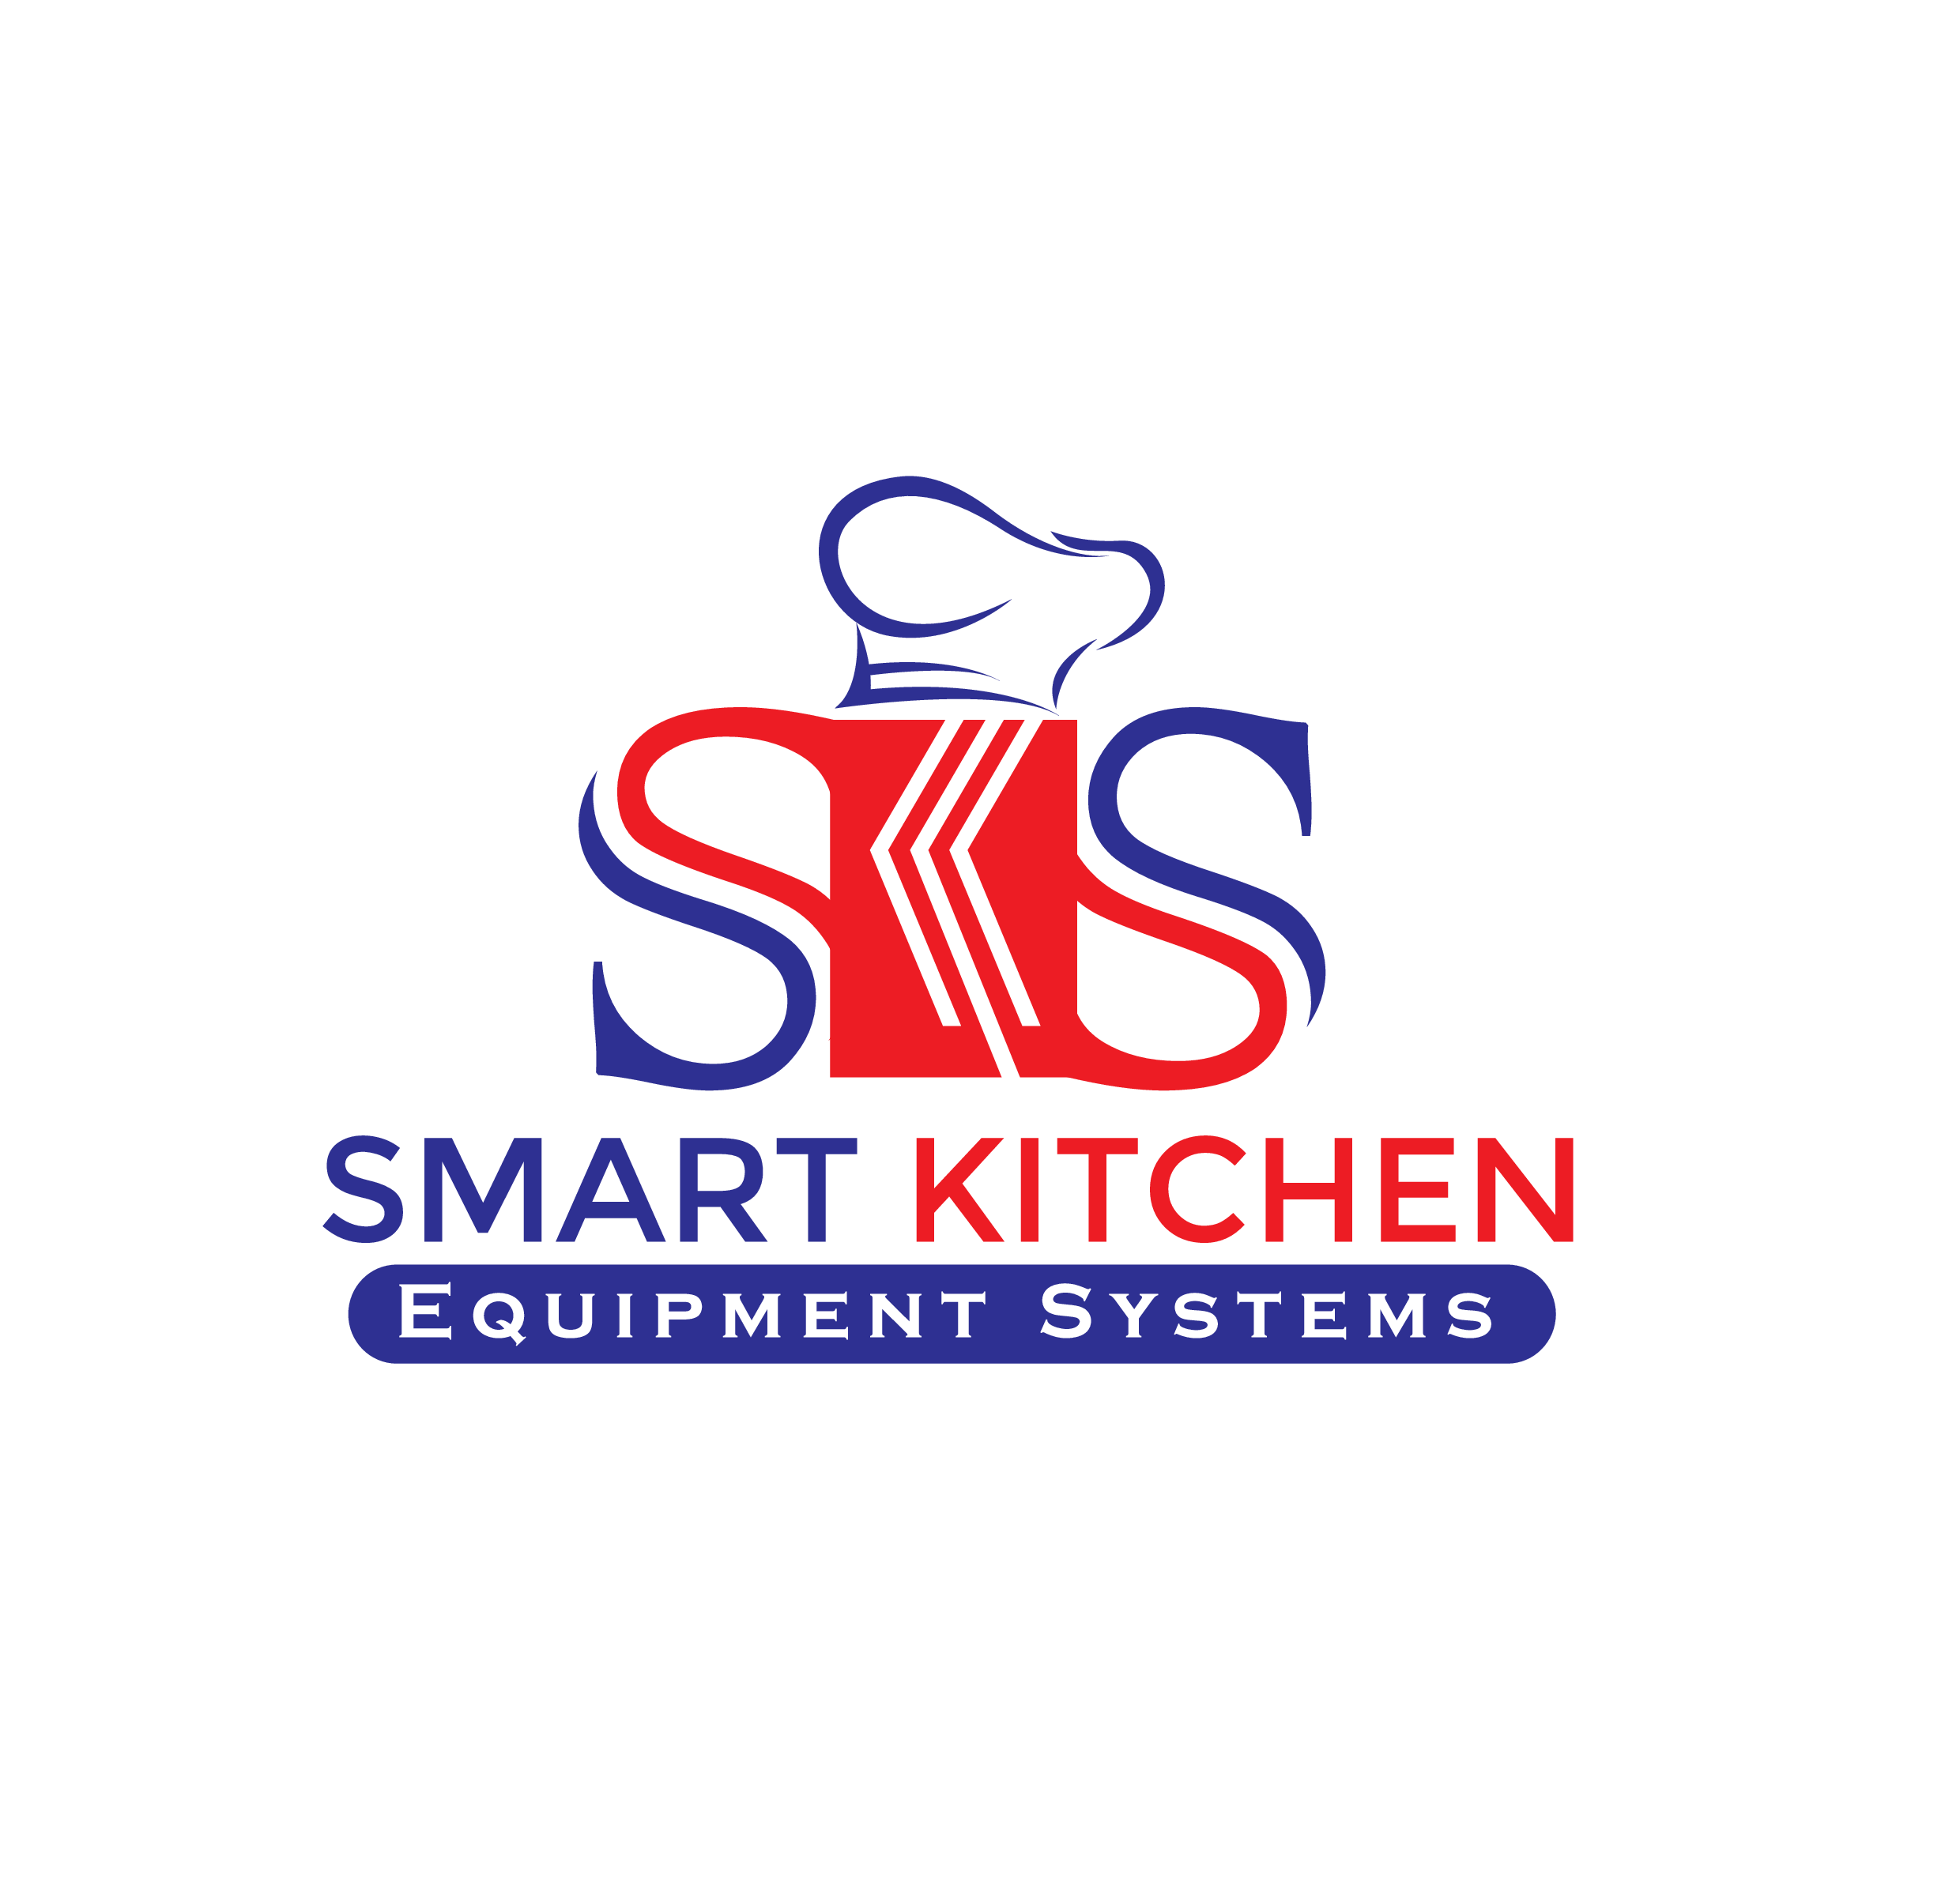 Smart Kitchen Equipment Systems